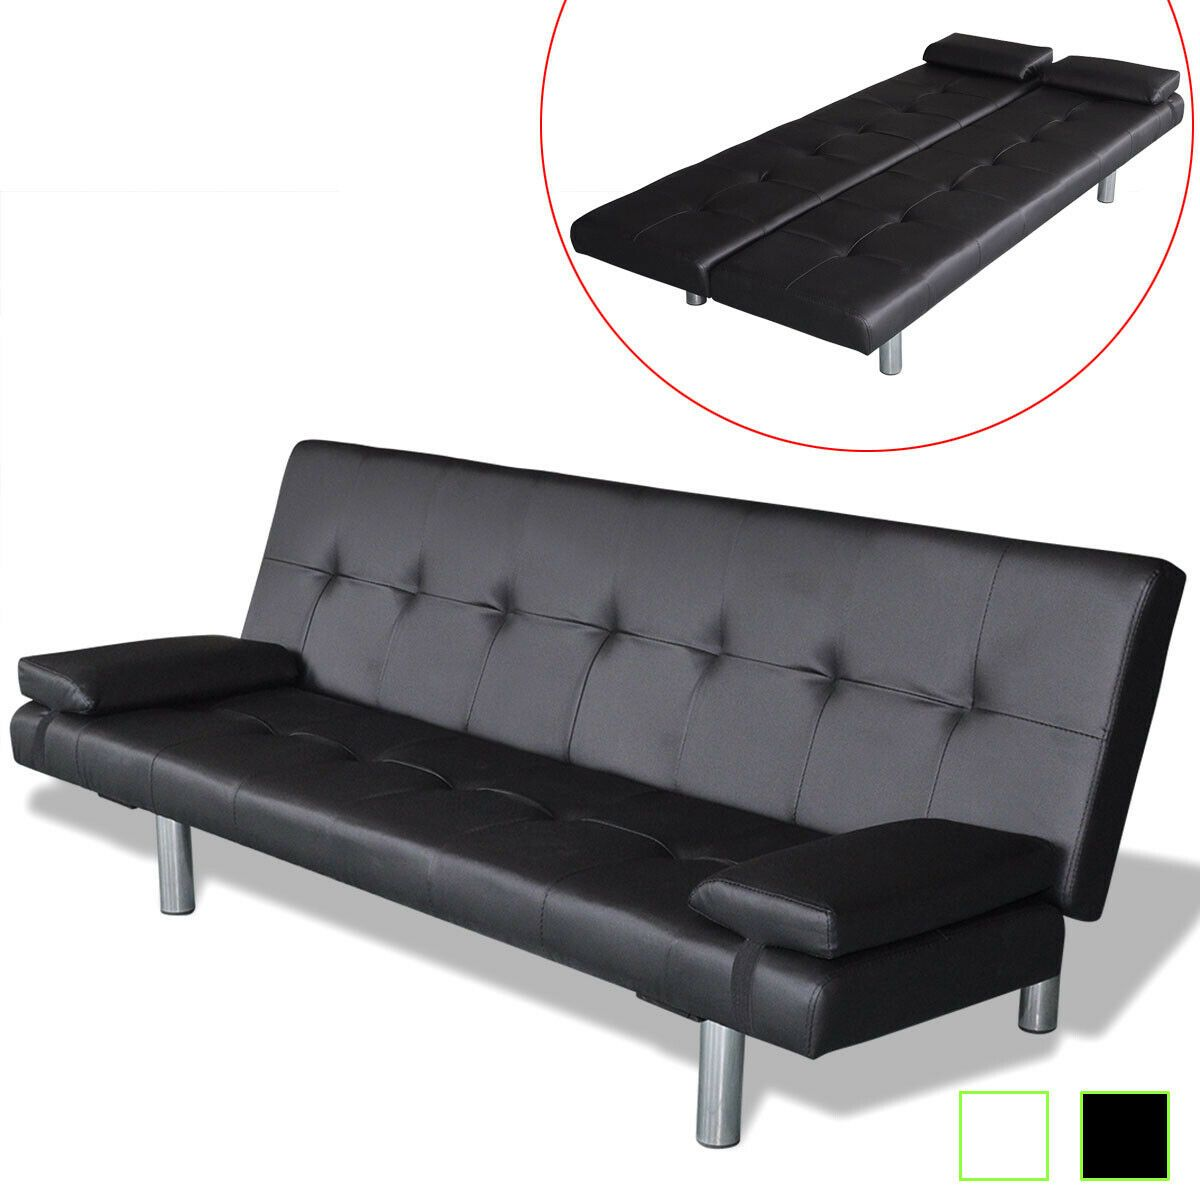 Vidaxl Sofa Bed W 2 Pillows Artificial Leather Adjustable Black Cream White White Sofa Id Living Room Furniture Sofas Best Leather Sofa Sofa Bed Furniture